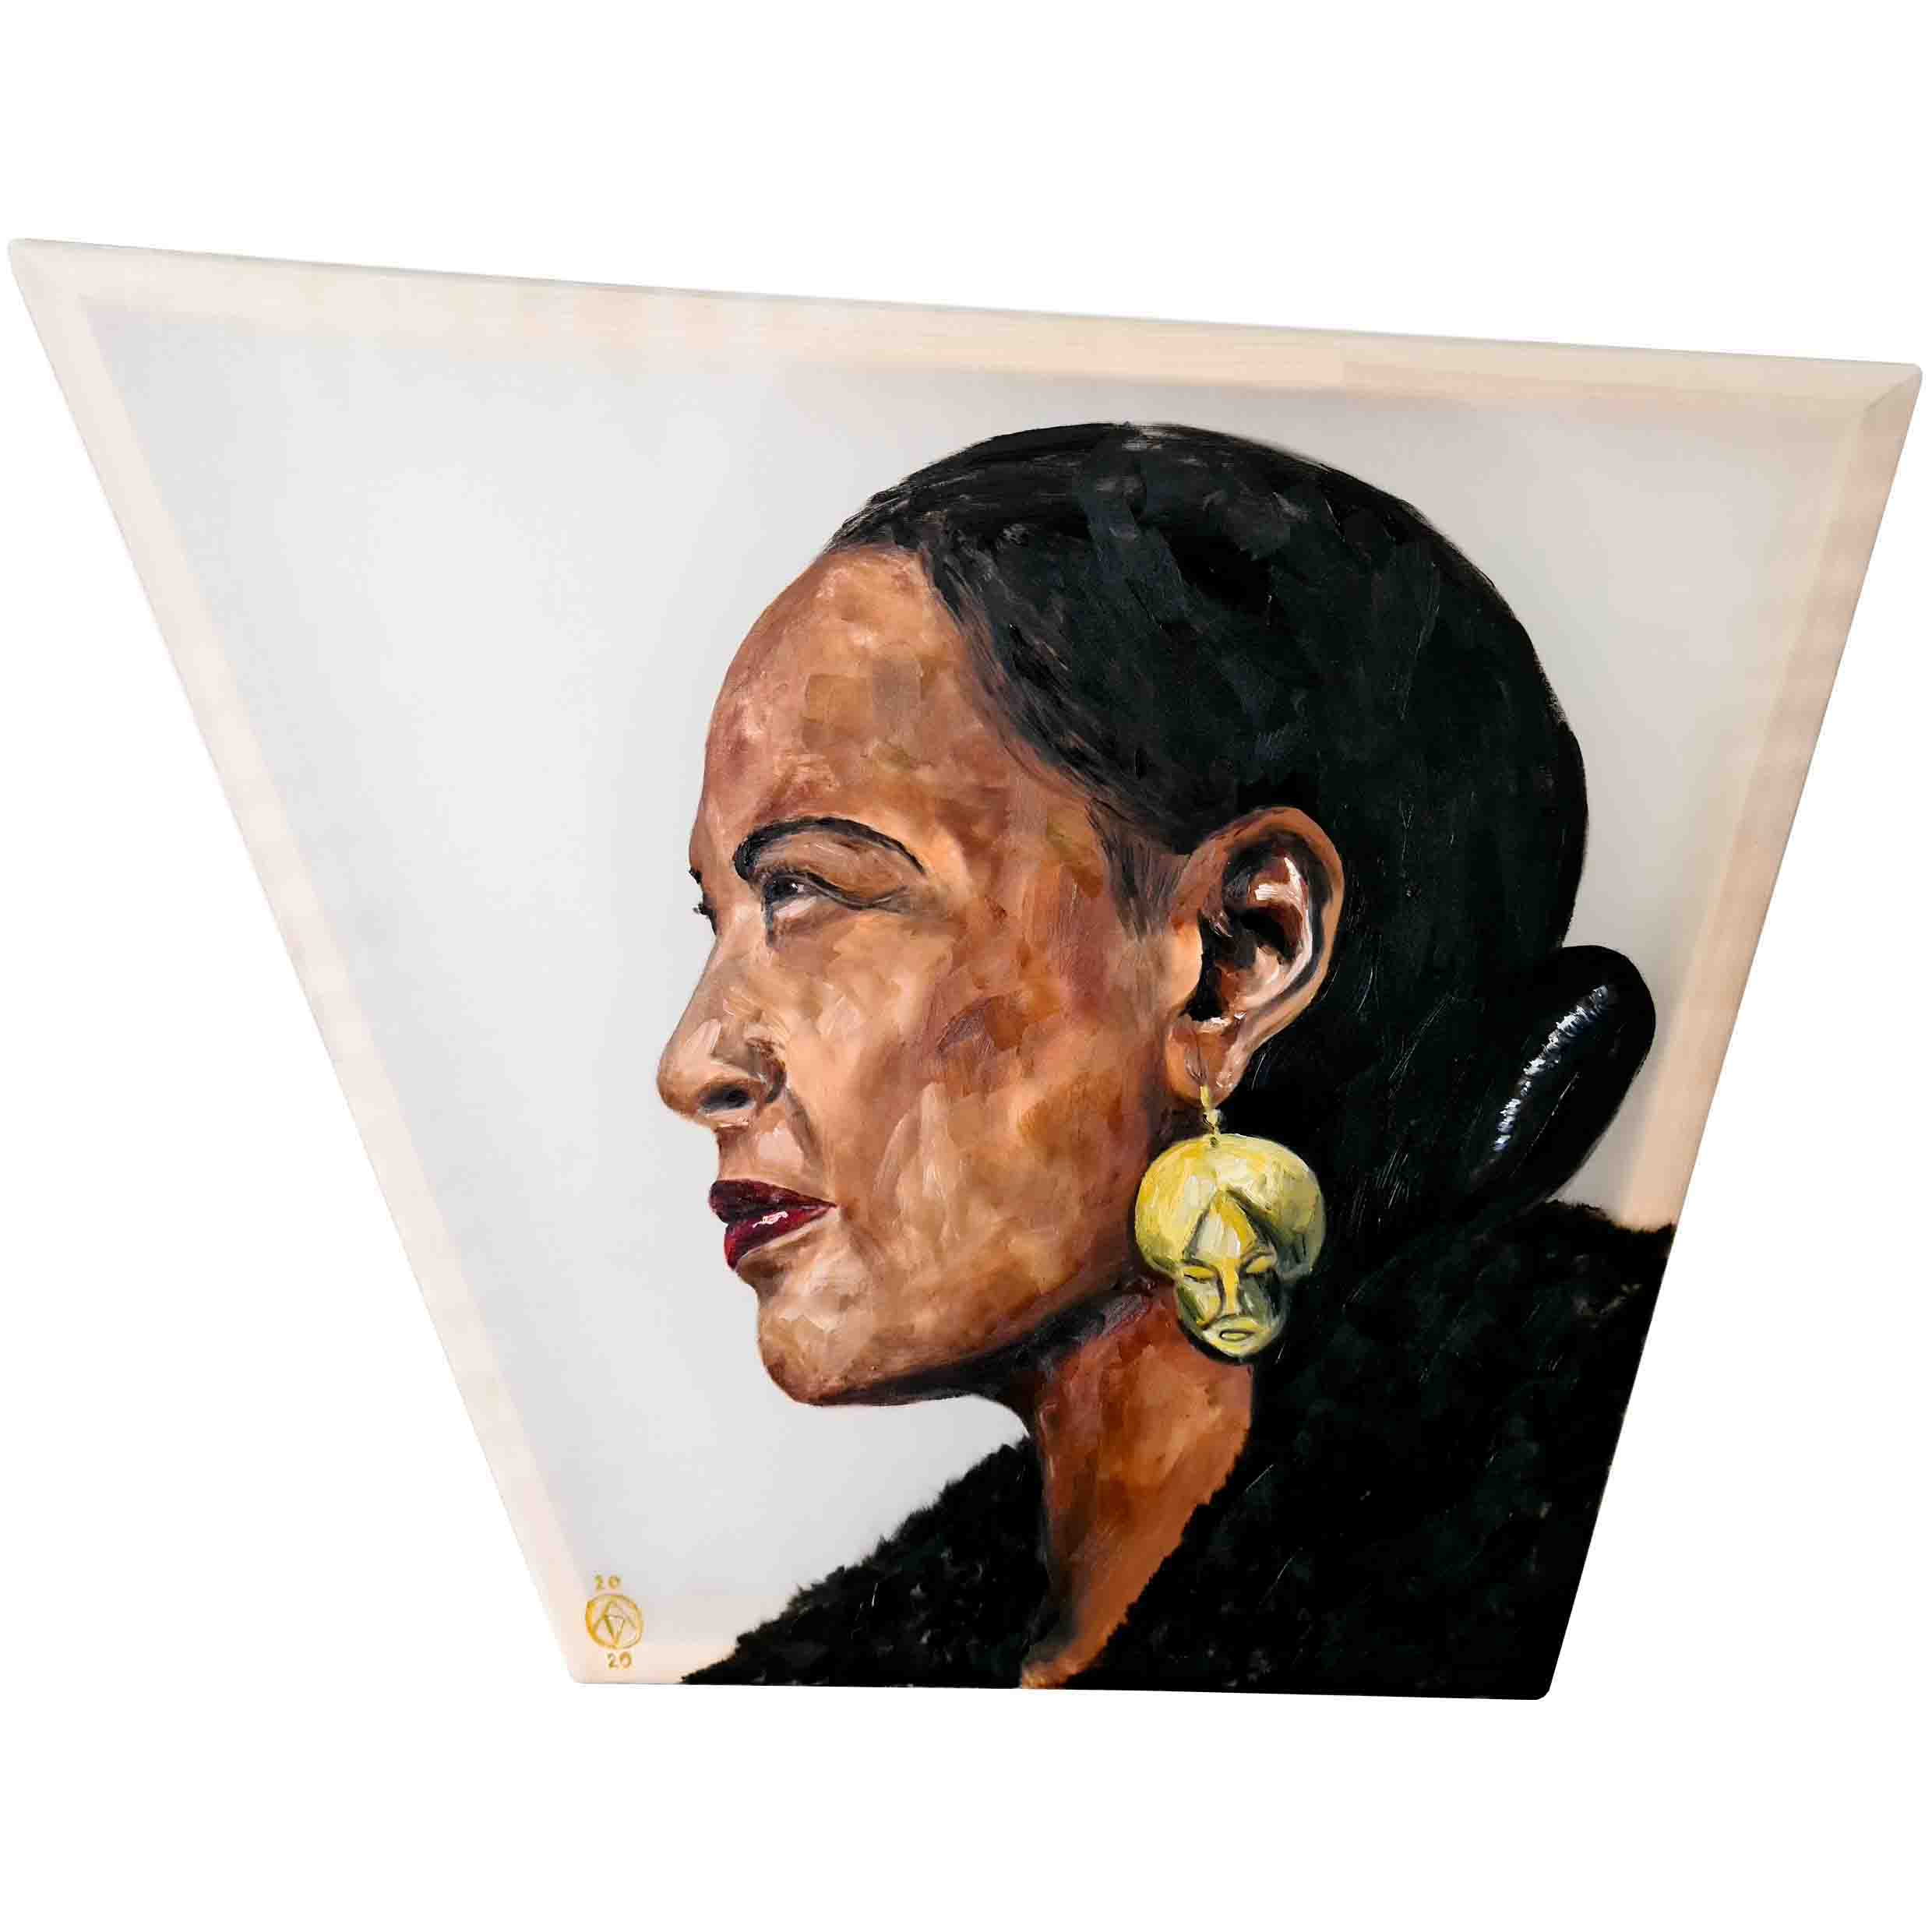 Billie Holiday by Anya Vero oil painting portrait